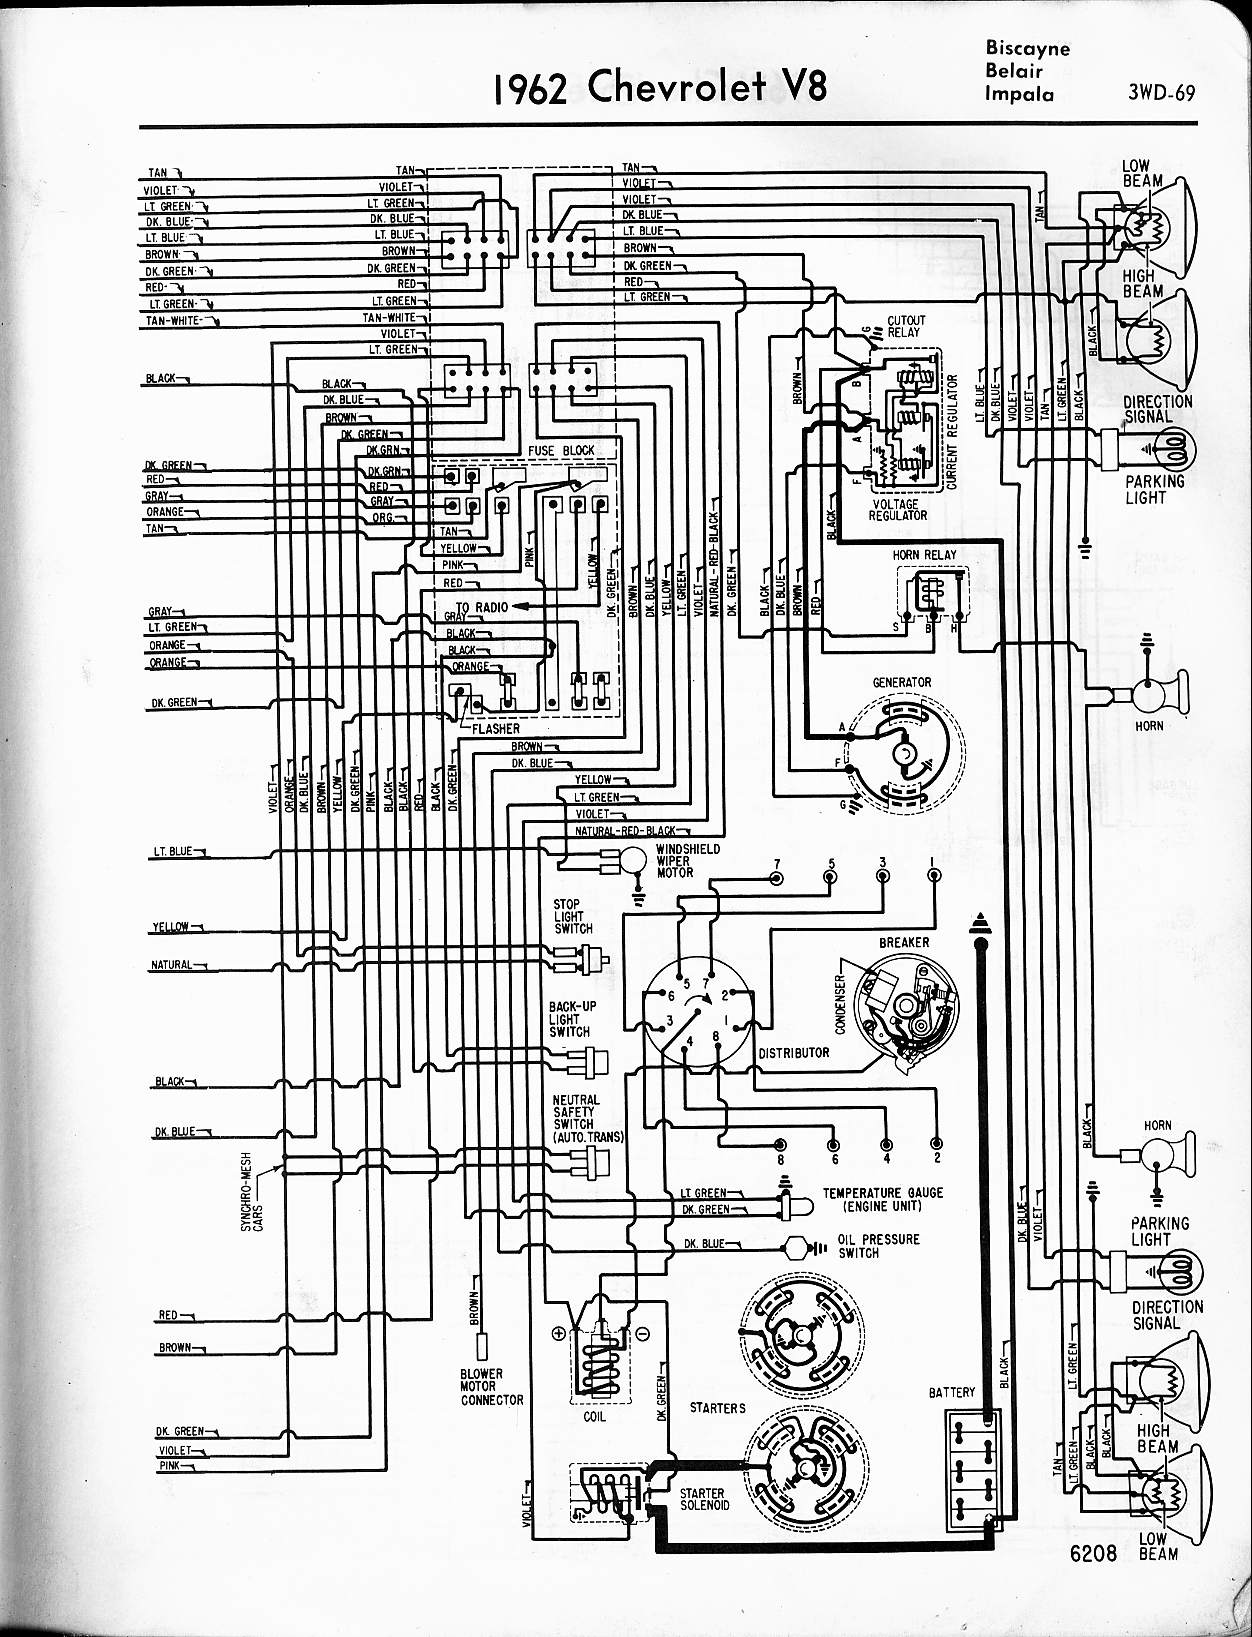 1962 impala wiring diagram wiring diagram u2022 rh msblog co 1962 impala headlight wiring diagram 1962 chevrolet impala wiring diagram